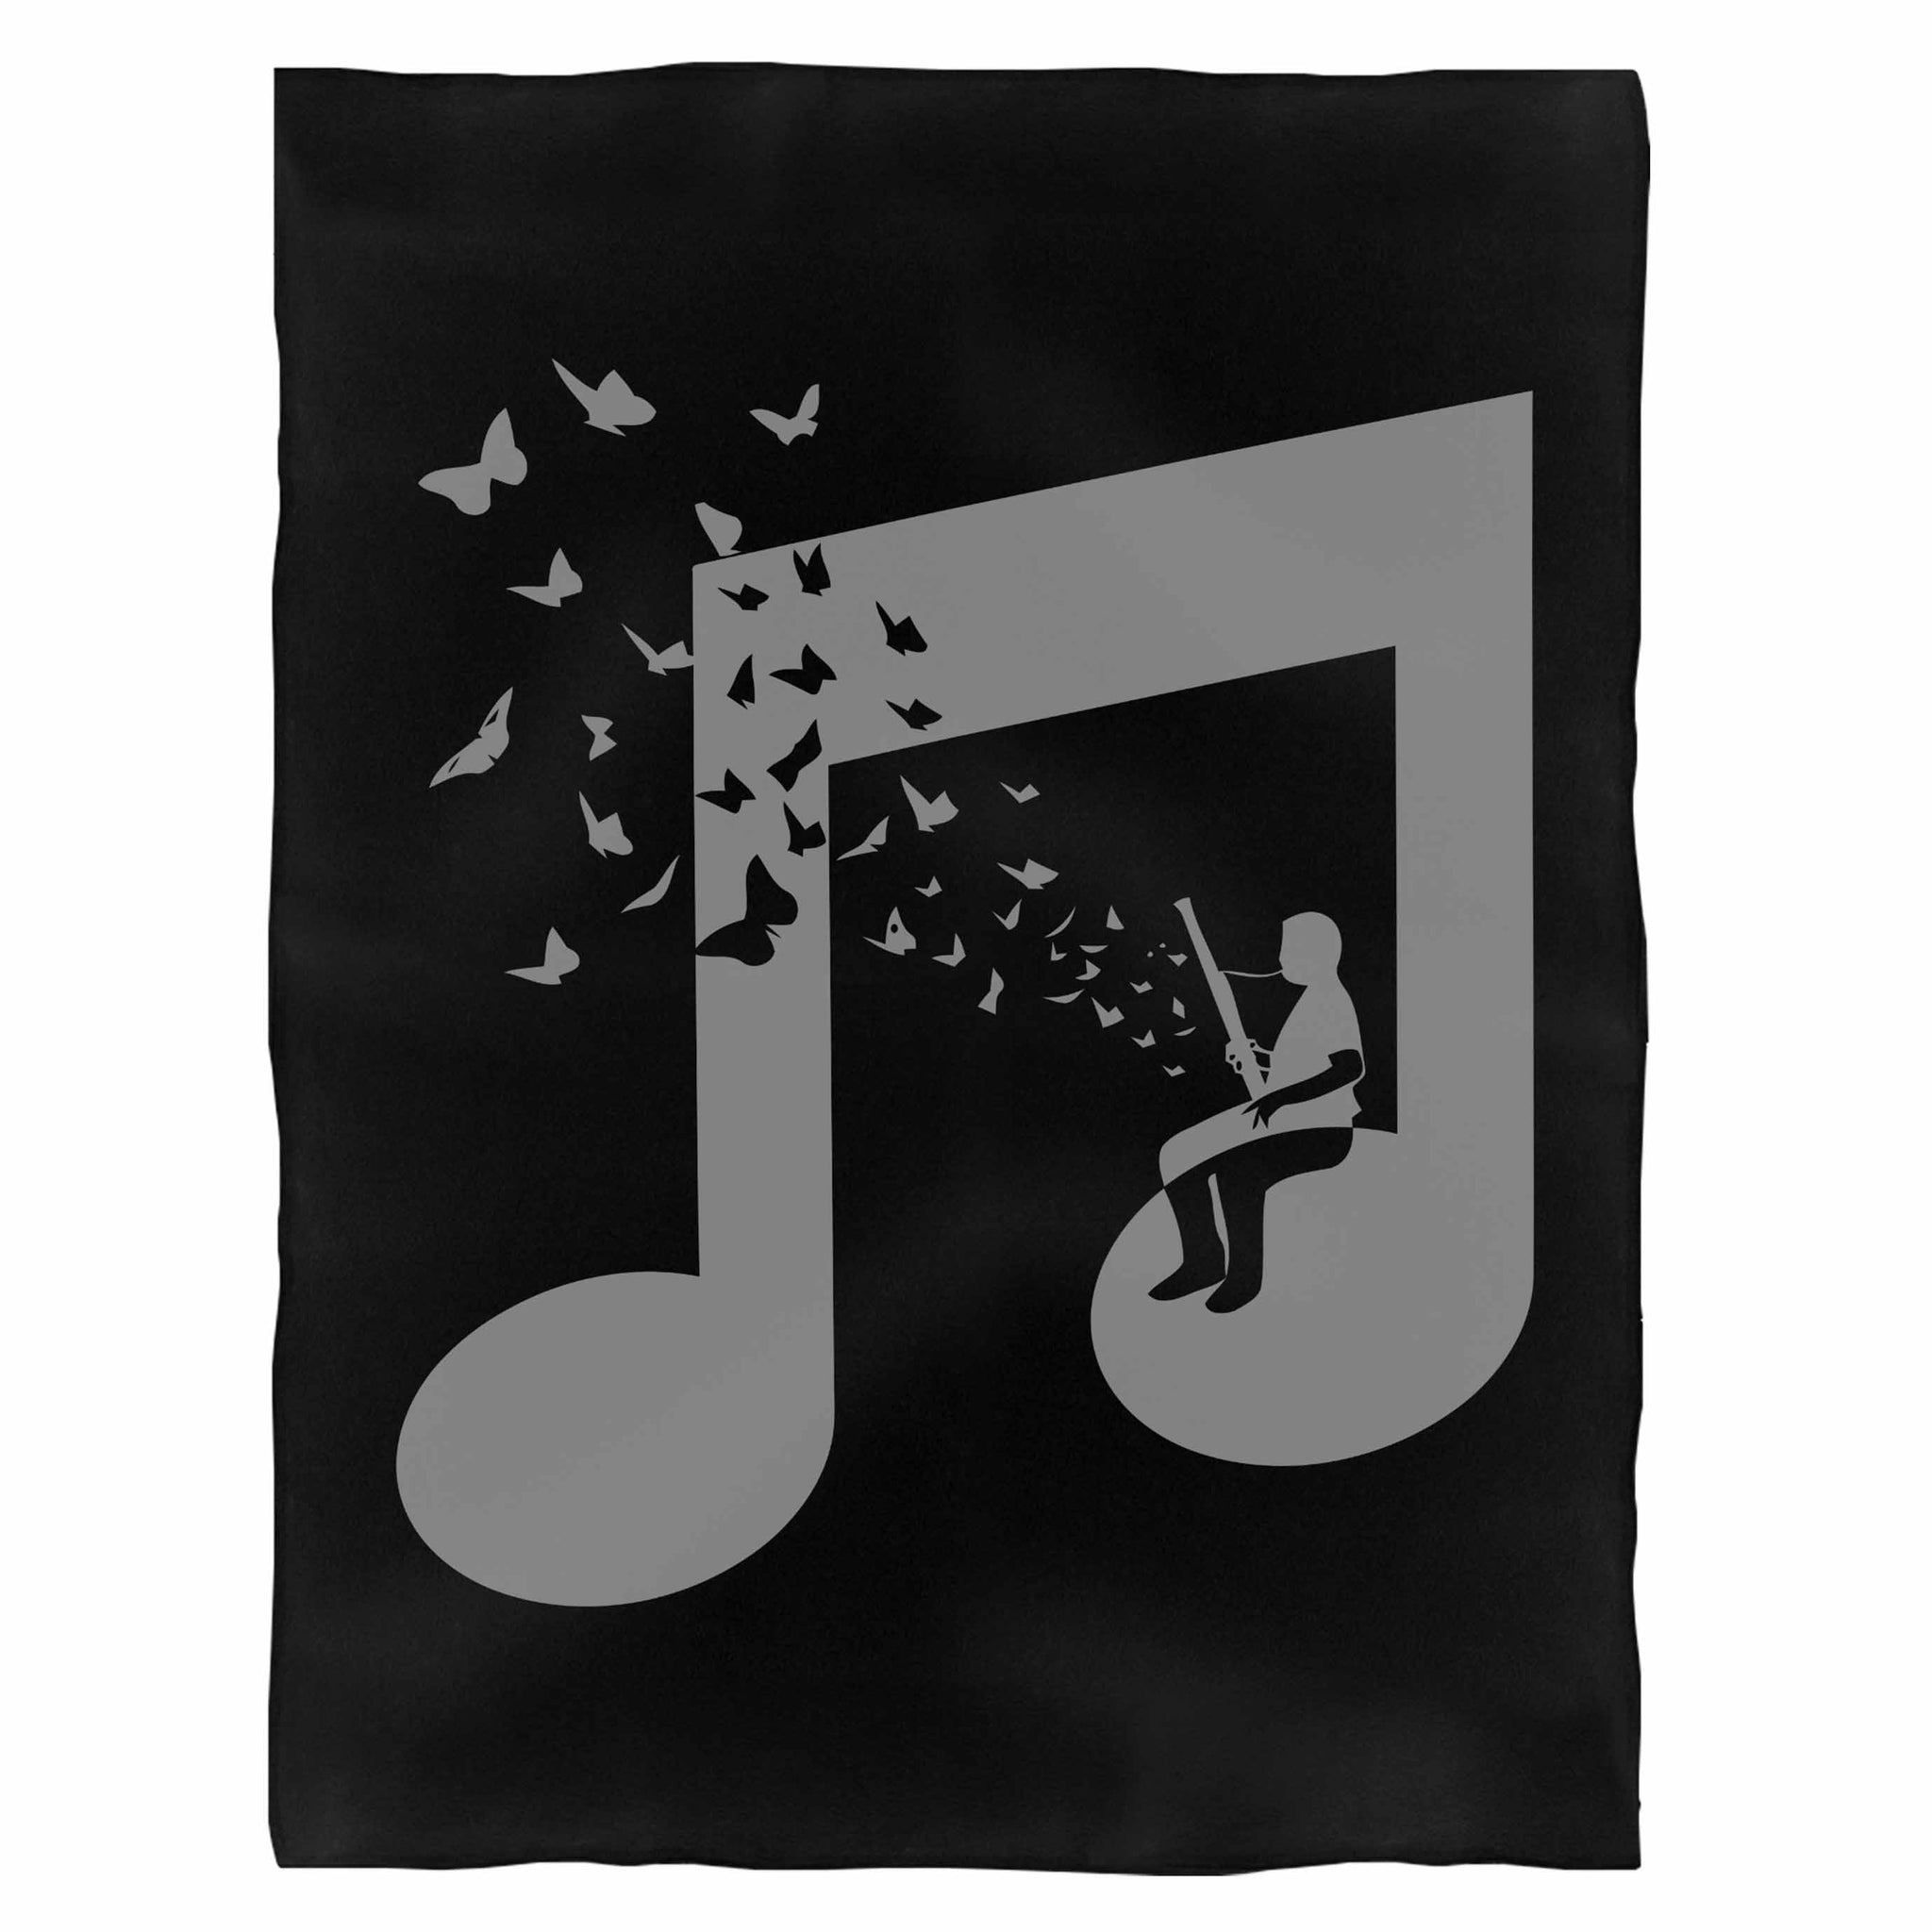 Bassoon Fleece Blanket